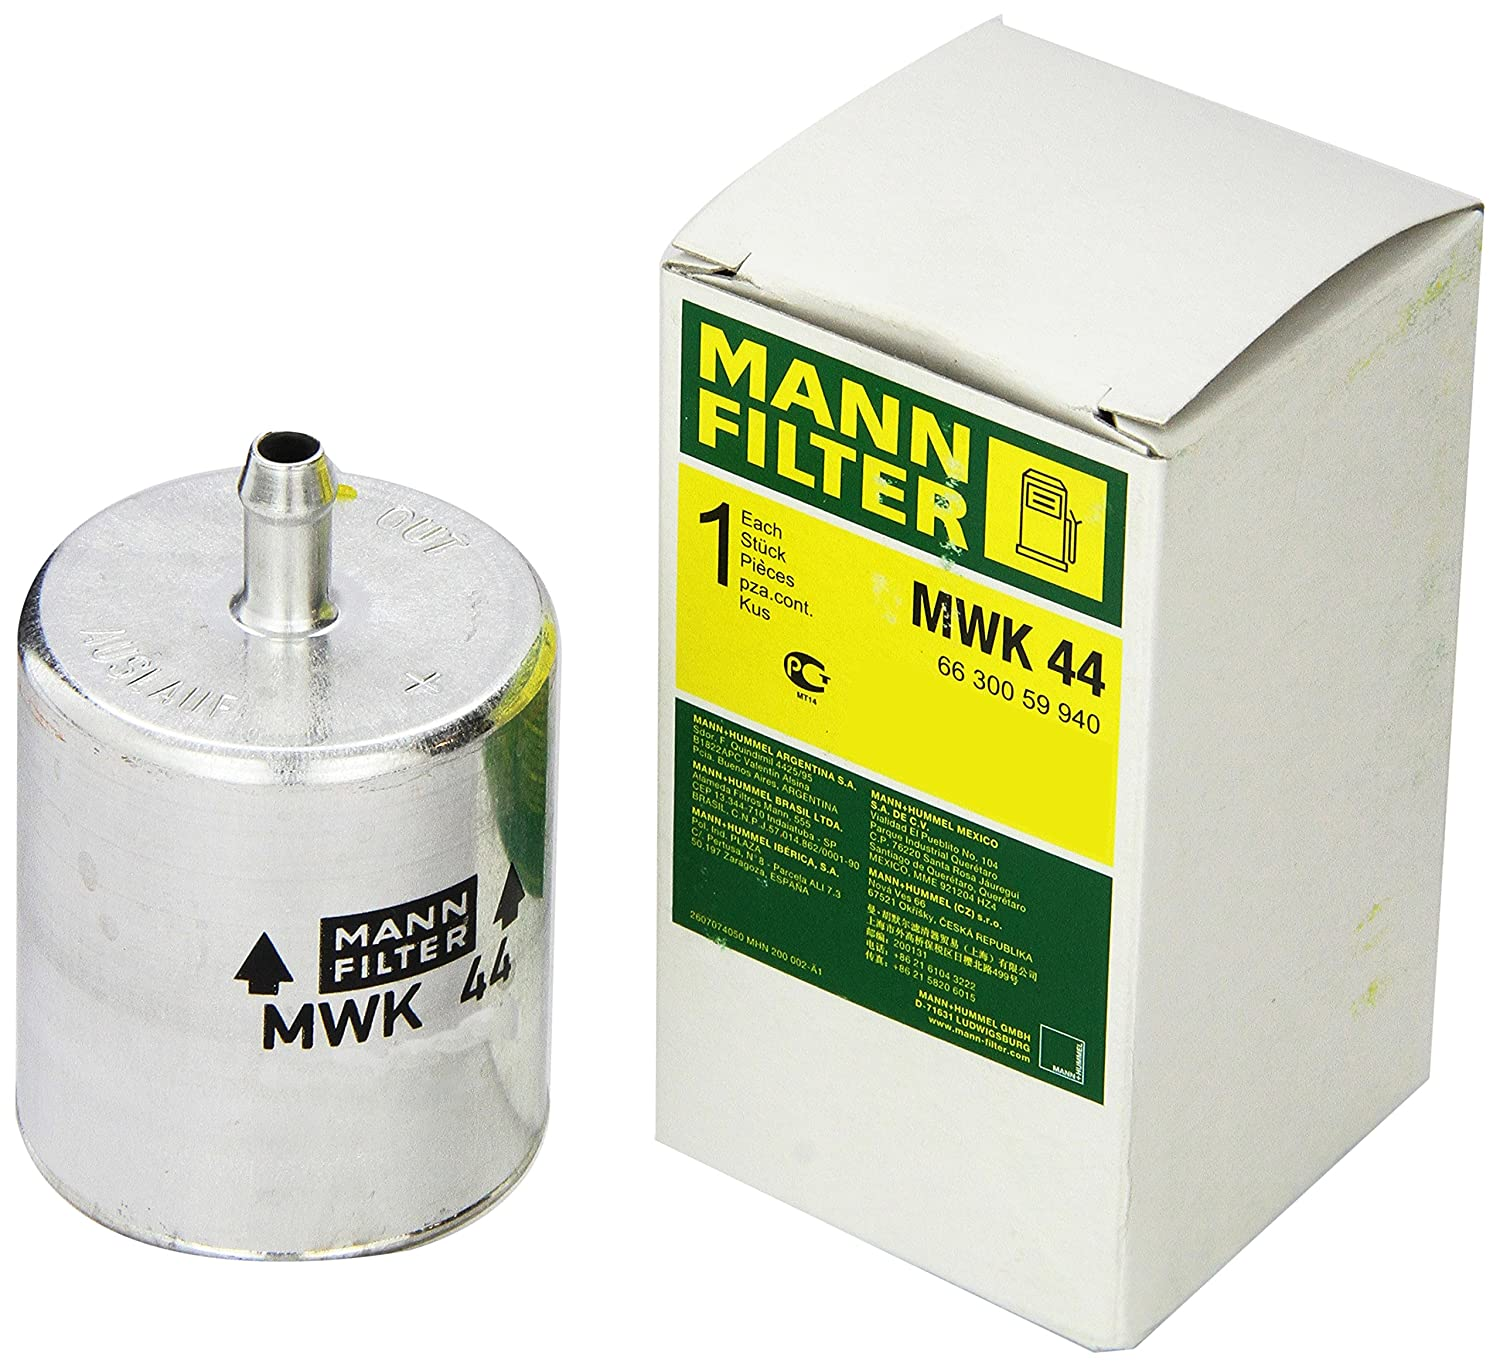 Amazon.com: Mann Filter MWK 44 Fuel Filter for BMW Motorcycle: Automotive